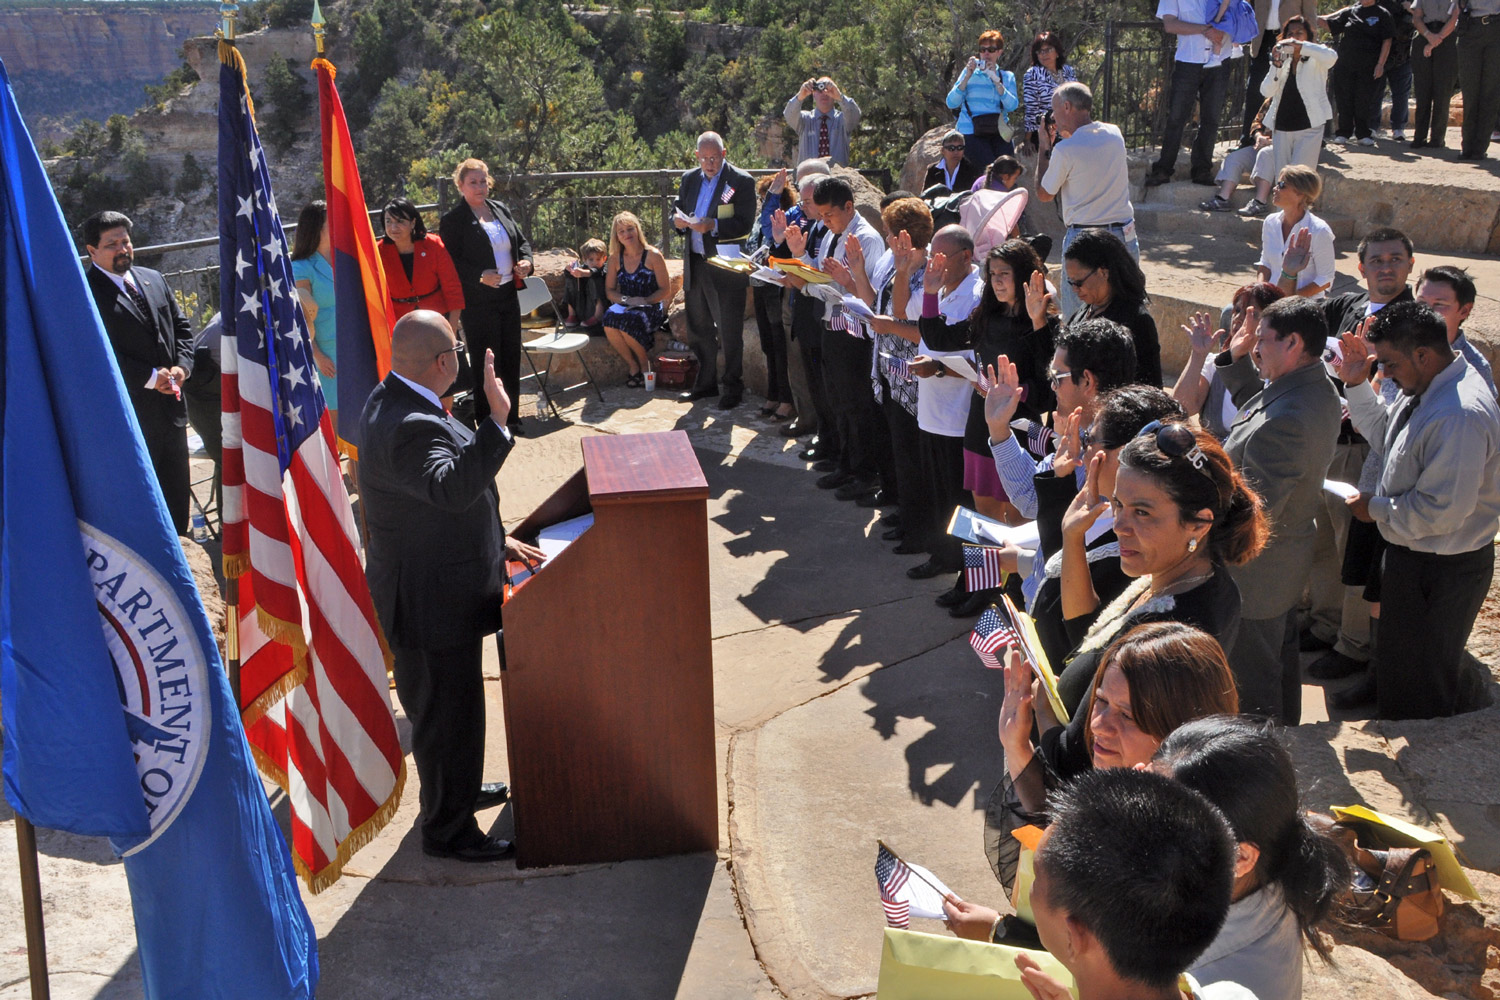 Immigrants take the oath of citizenship during a ceremony on the South Rim of the Grand Canyon. (Image credit: Michael Quinn/National Park Service)